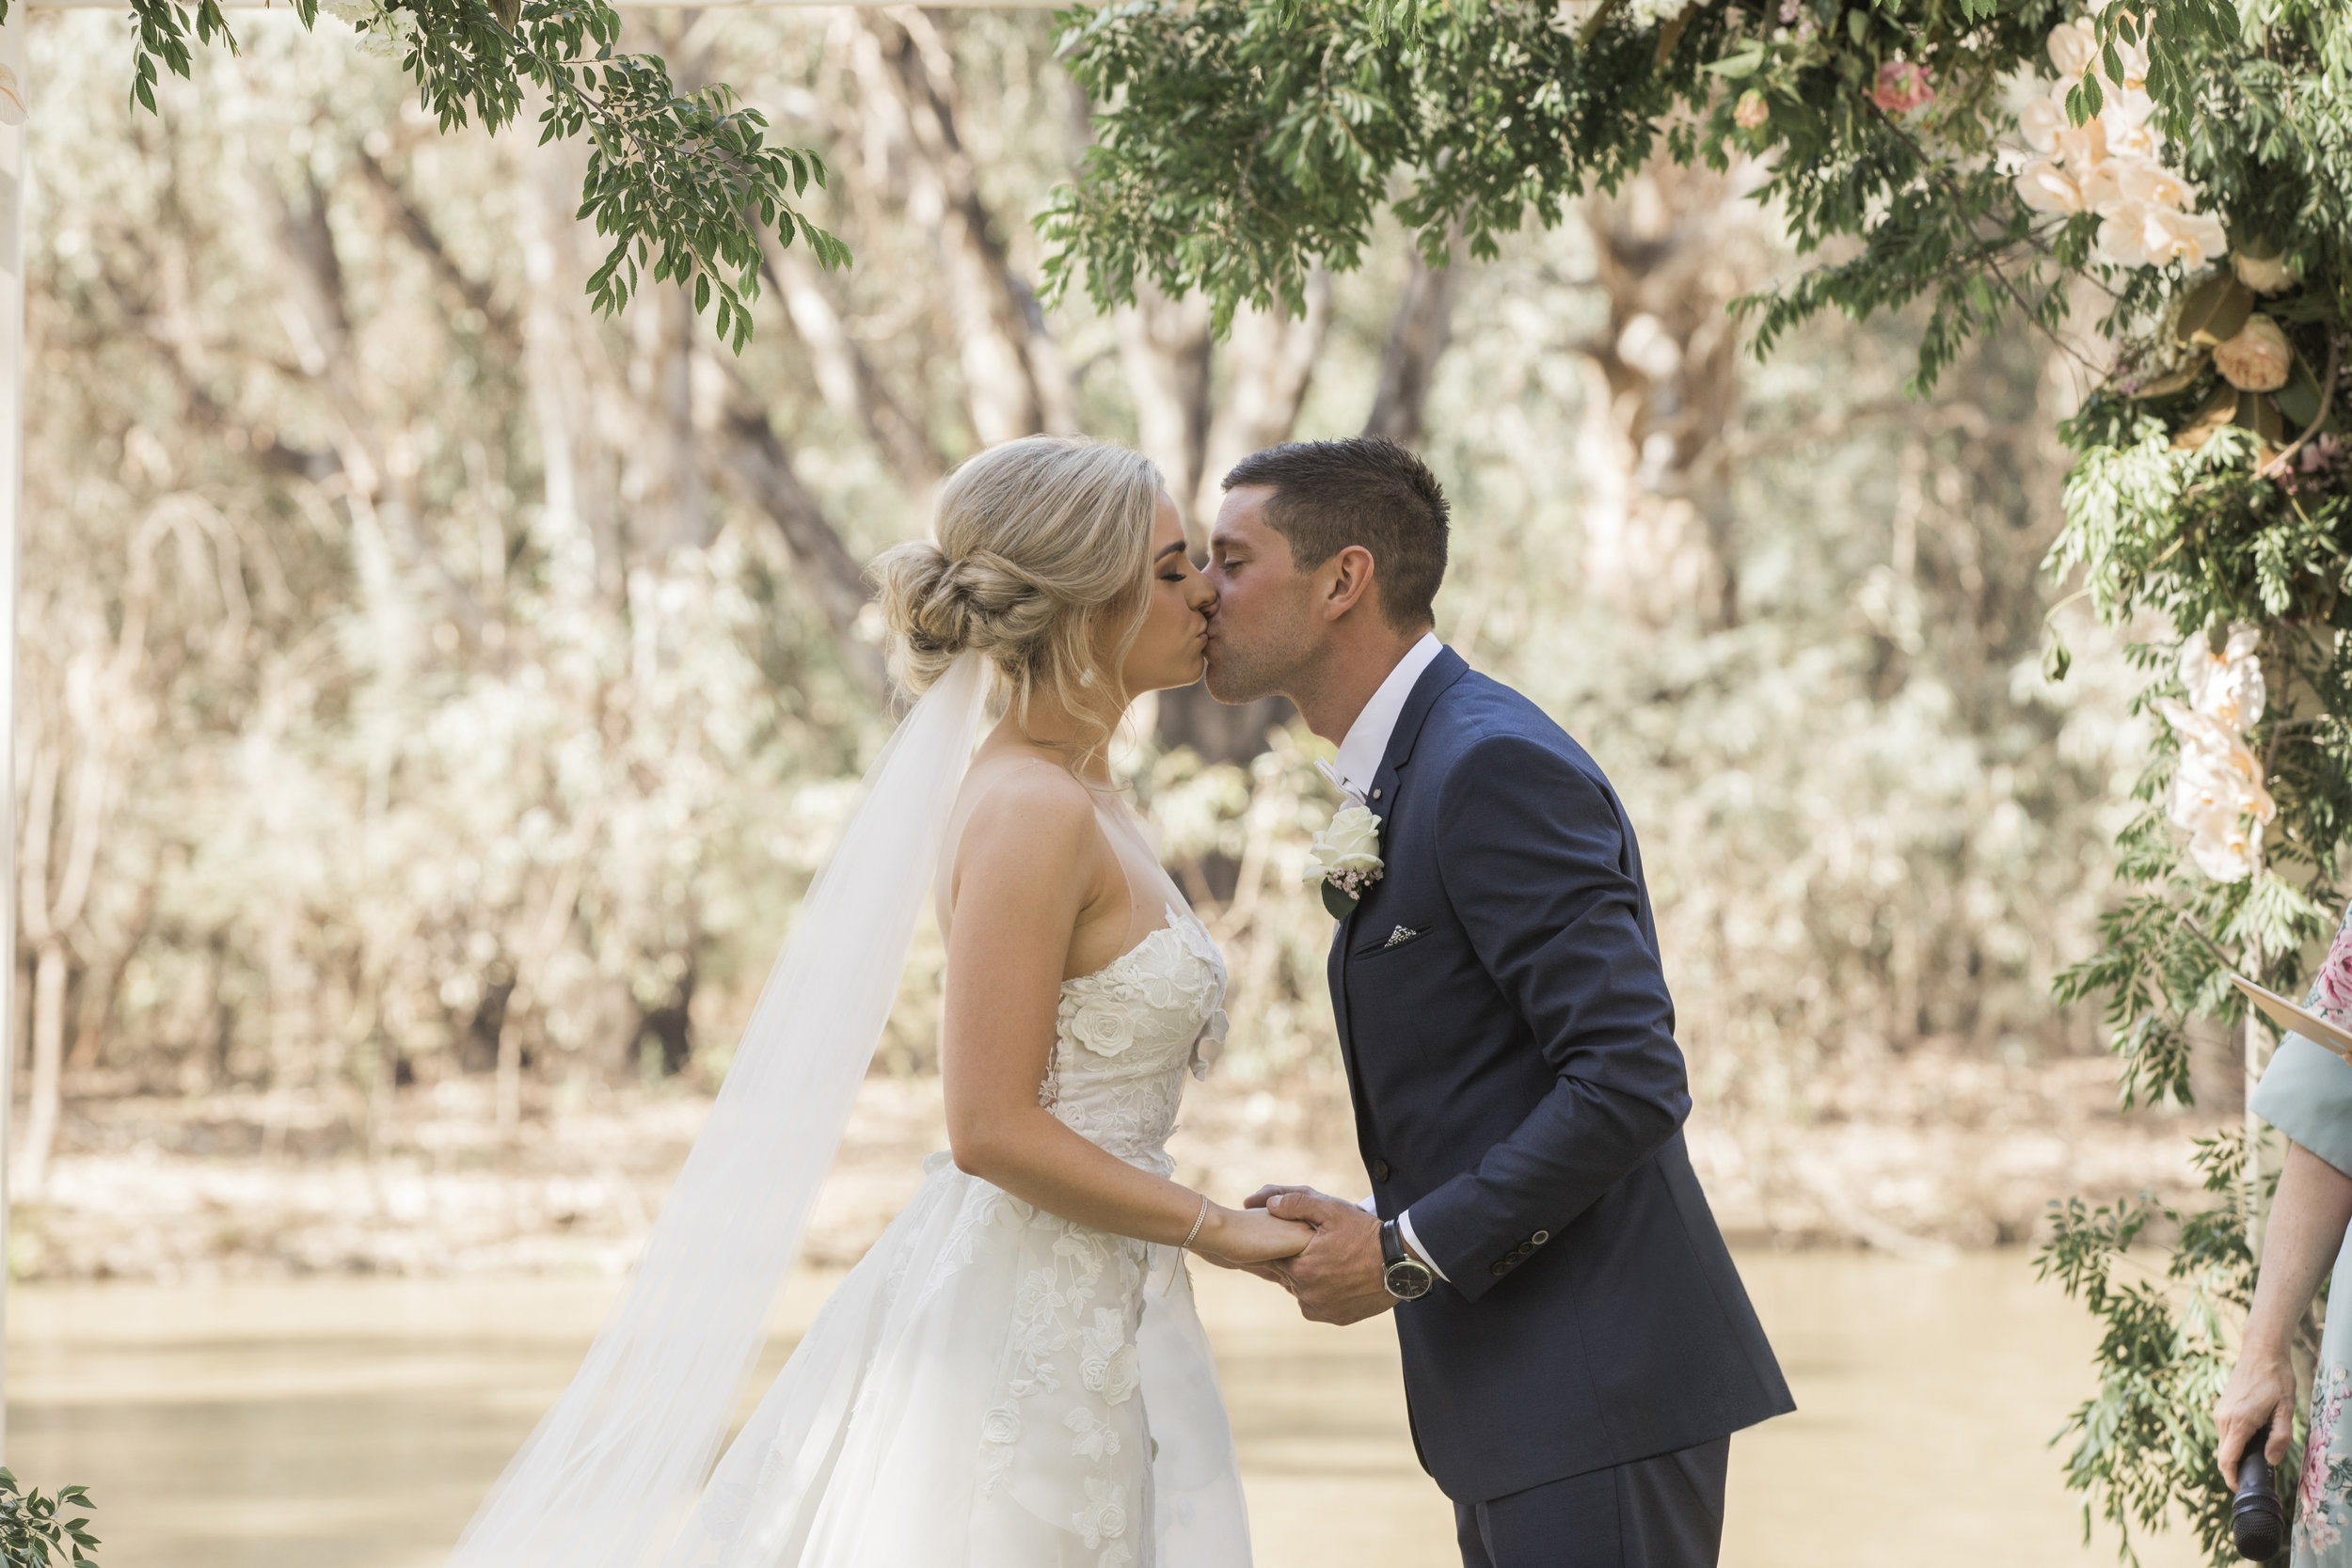 ECHUCA BRIDE, ECHUCA MOAMA WEDDINGS, ECHUCA MOAMA BRIDE